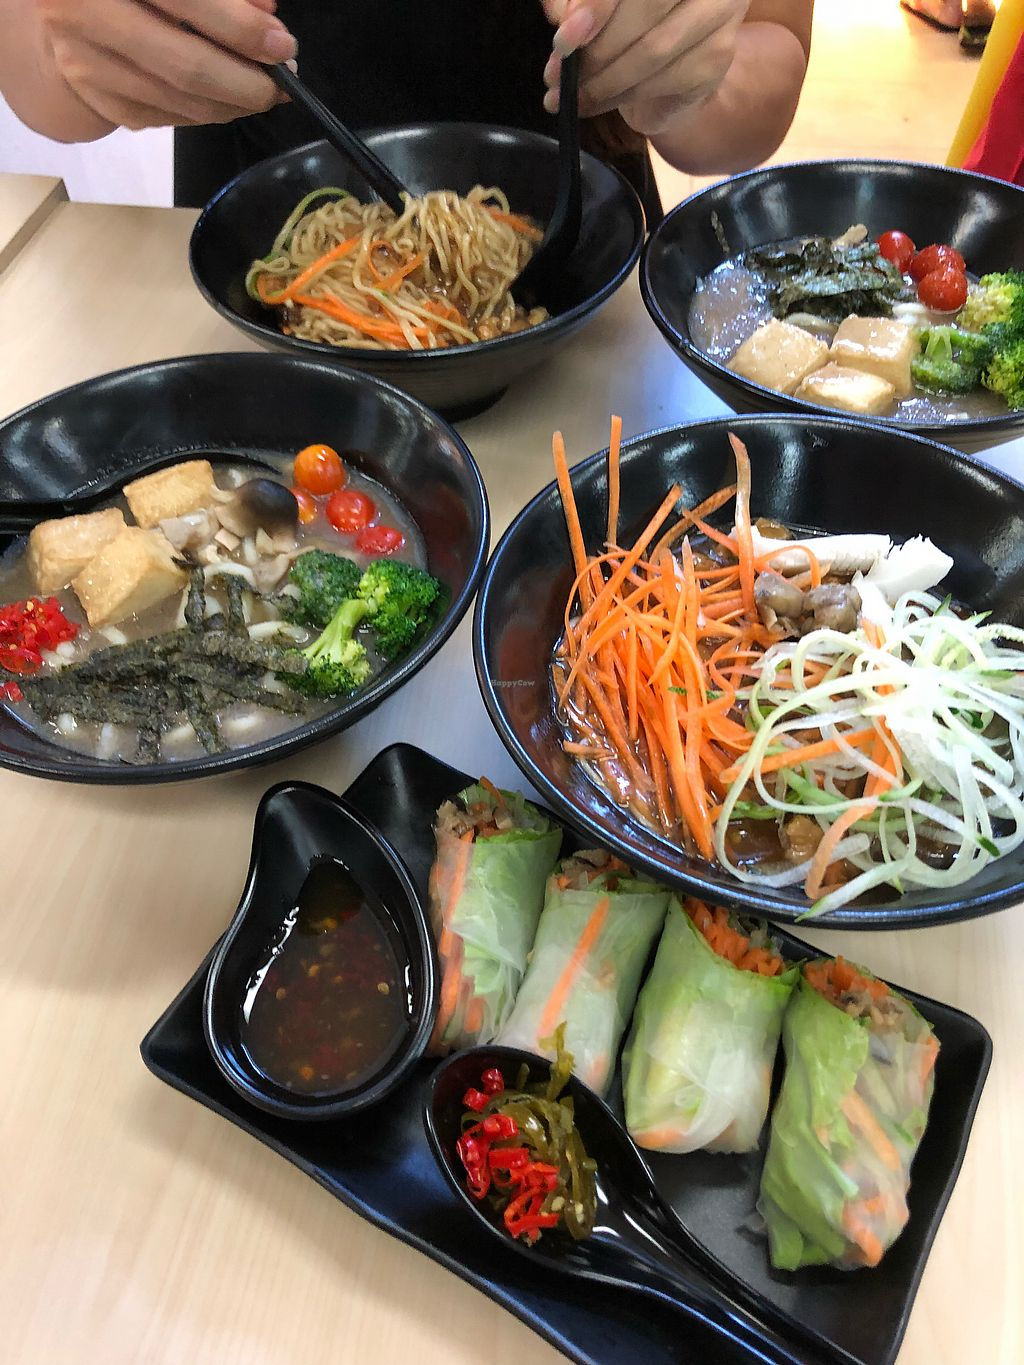 """Photo of Veggie House - Toa Payoh  by <a href=""""/members/profile/CherylQuincy"""">CherylQuincy</a> <br/>Spring rolls, mushroom udon and minced Soya Noodles <br/> February 7, 2018  - <a href='/contact/abuse/image/111216/356065'>Report</a>"""